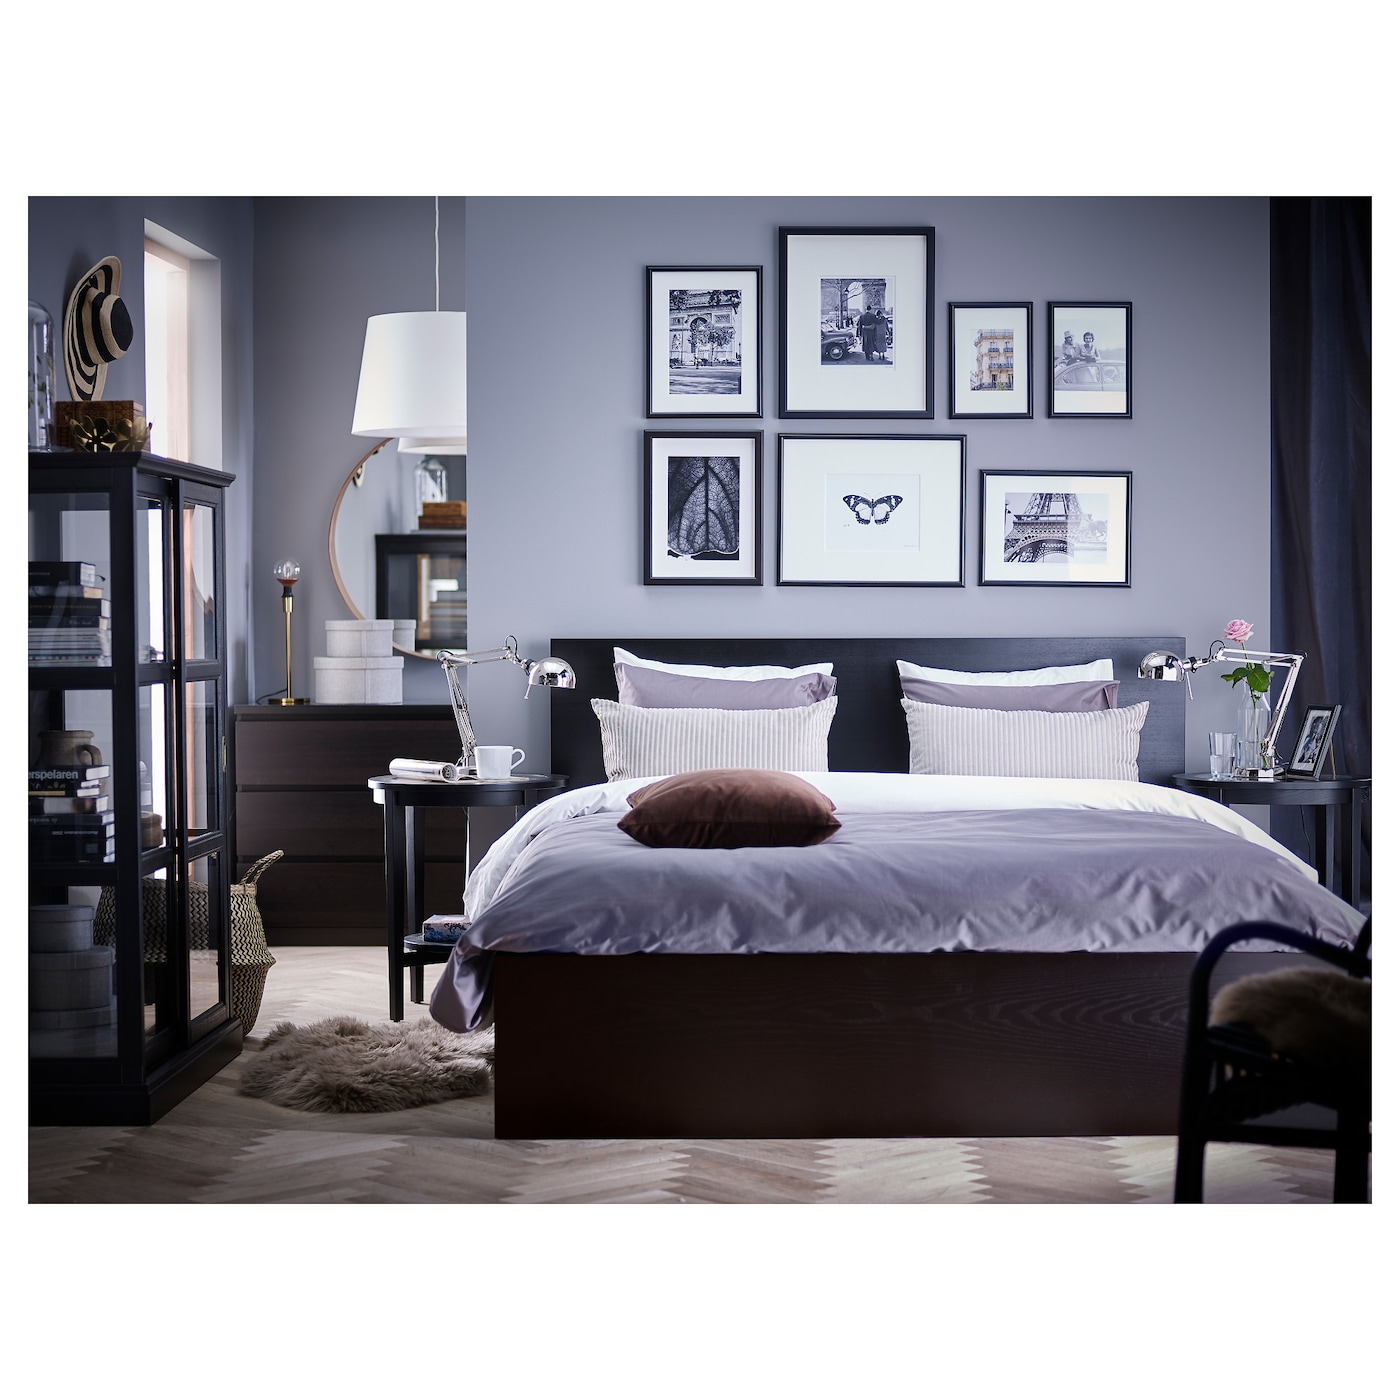 malm cadre lit haut 4rgt brun noir 160 x 200 cm ikea. Black Bedroom Furniture Sets. Home Design Ideas